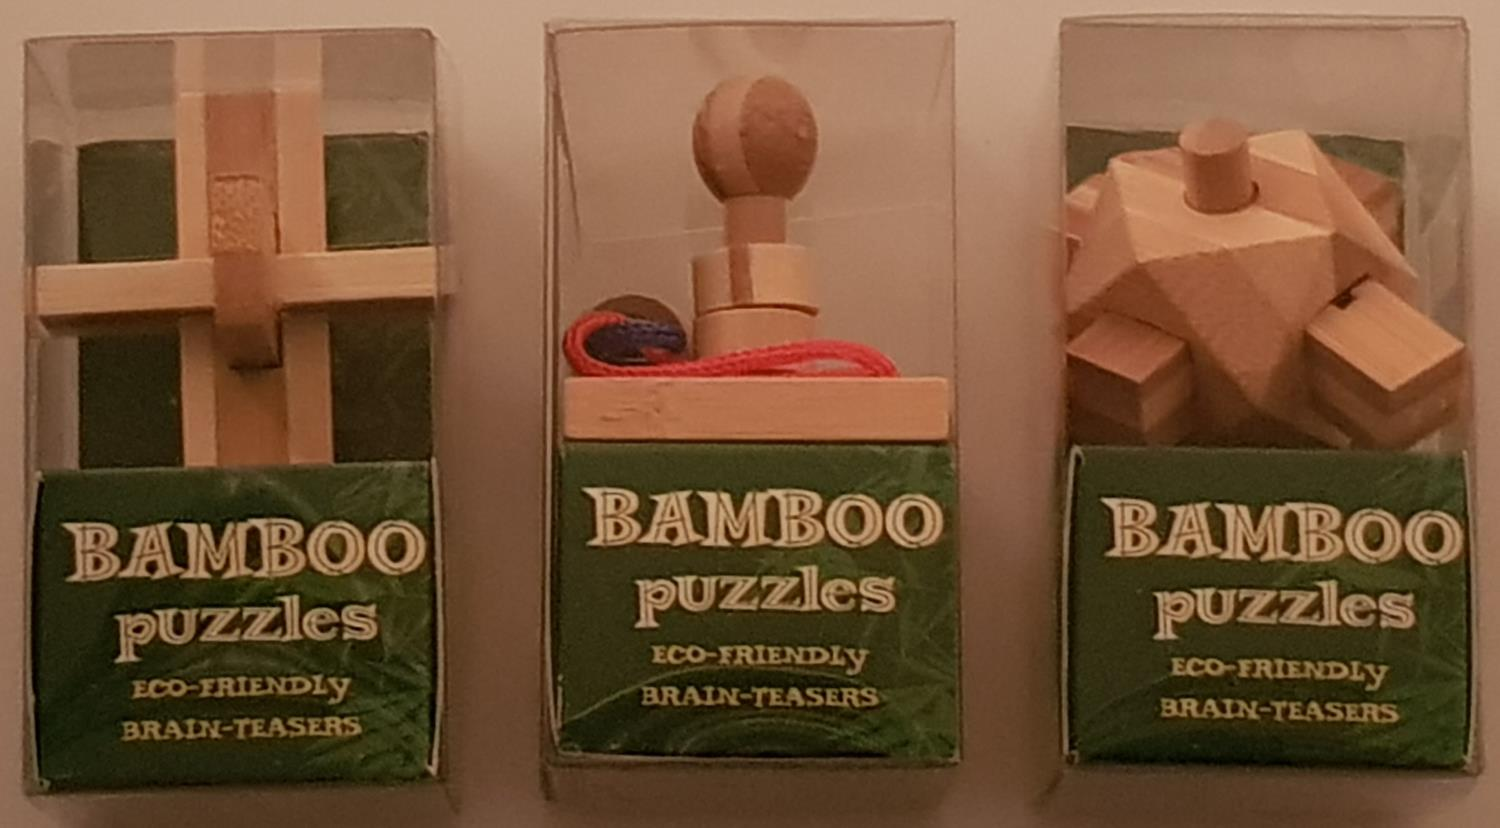 Bamboo pussel